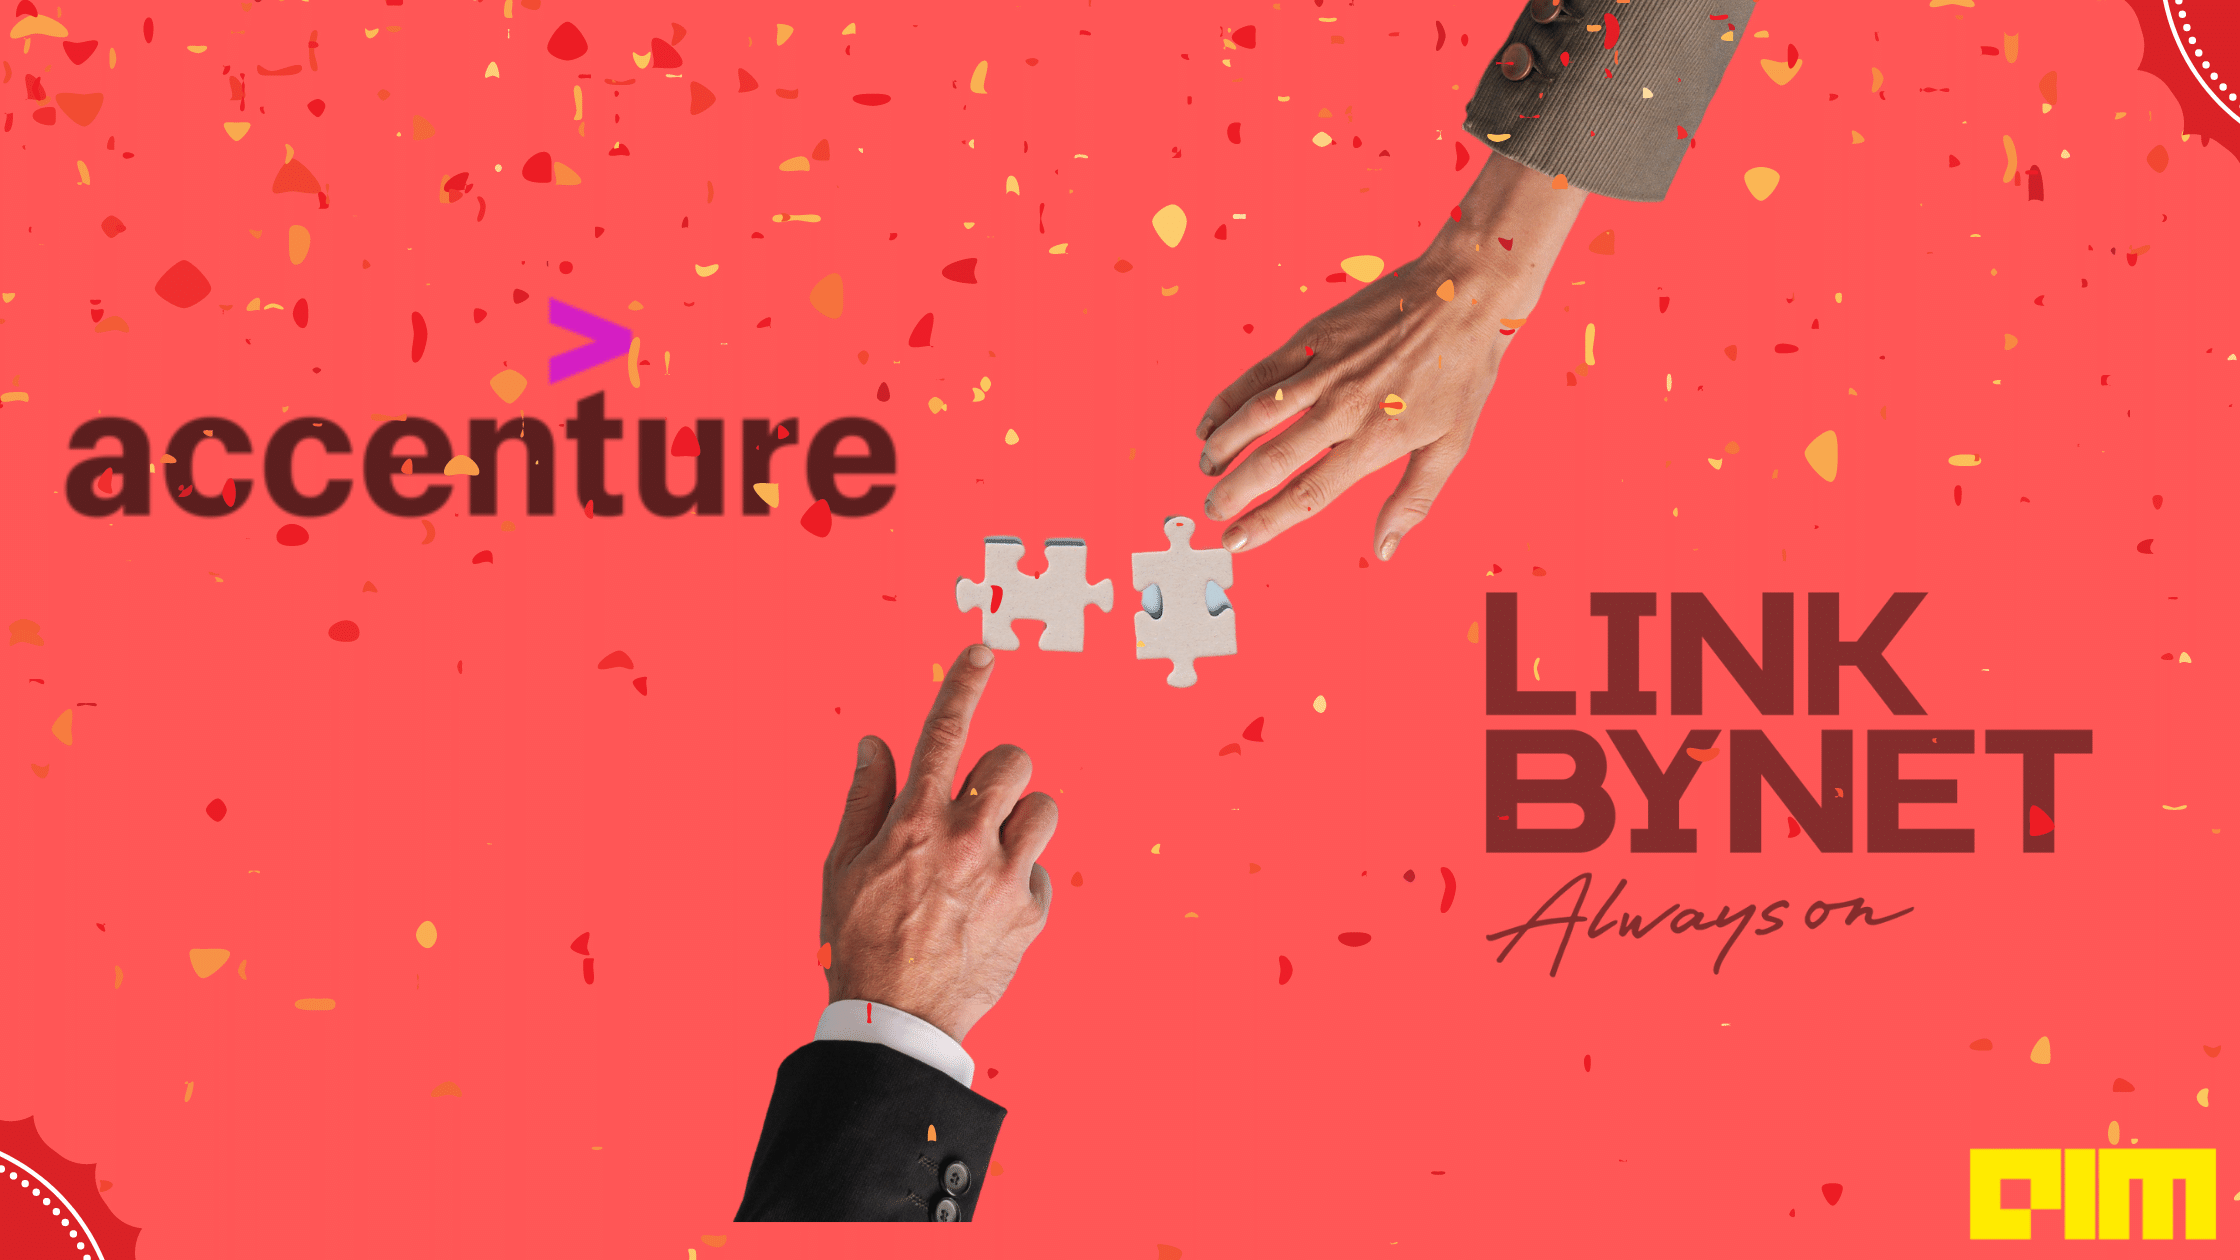 Why Accenture Is Acquiring Linkbynet?